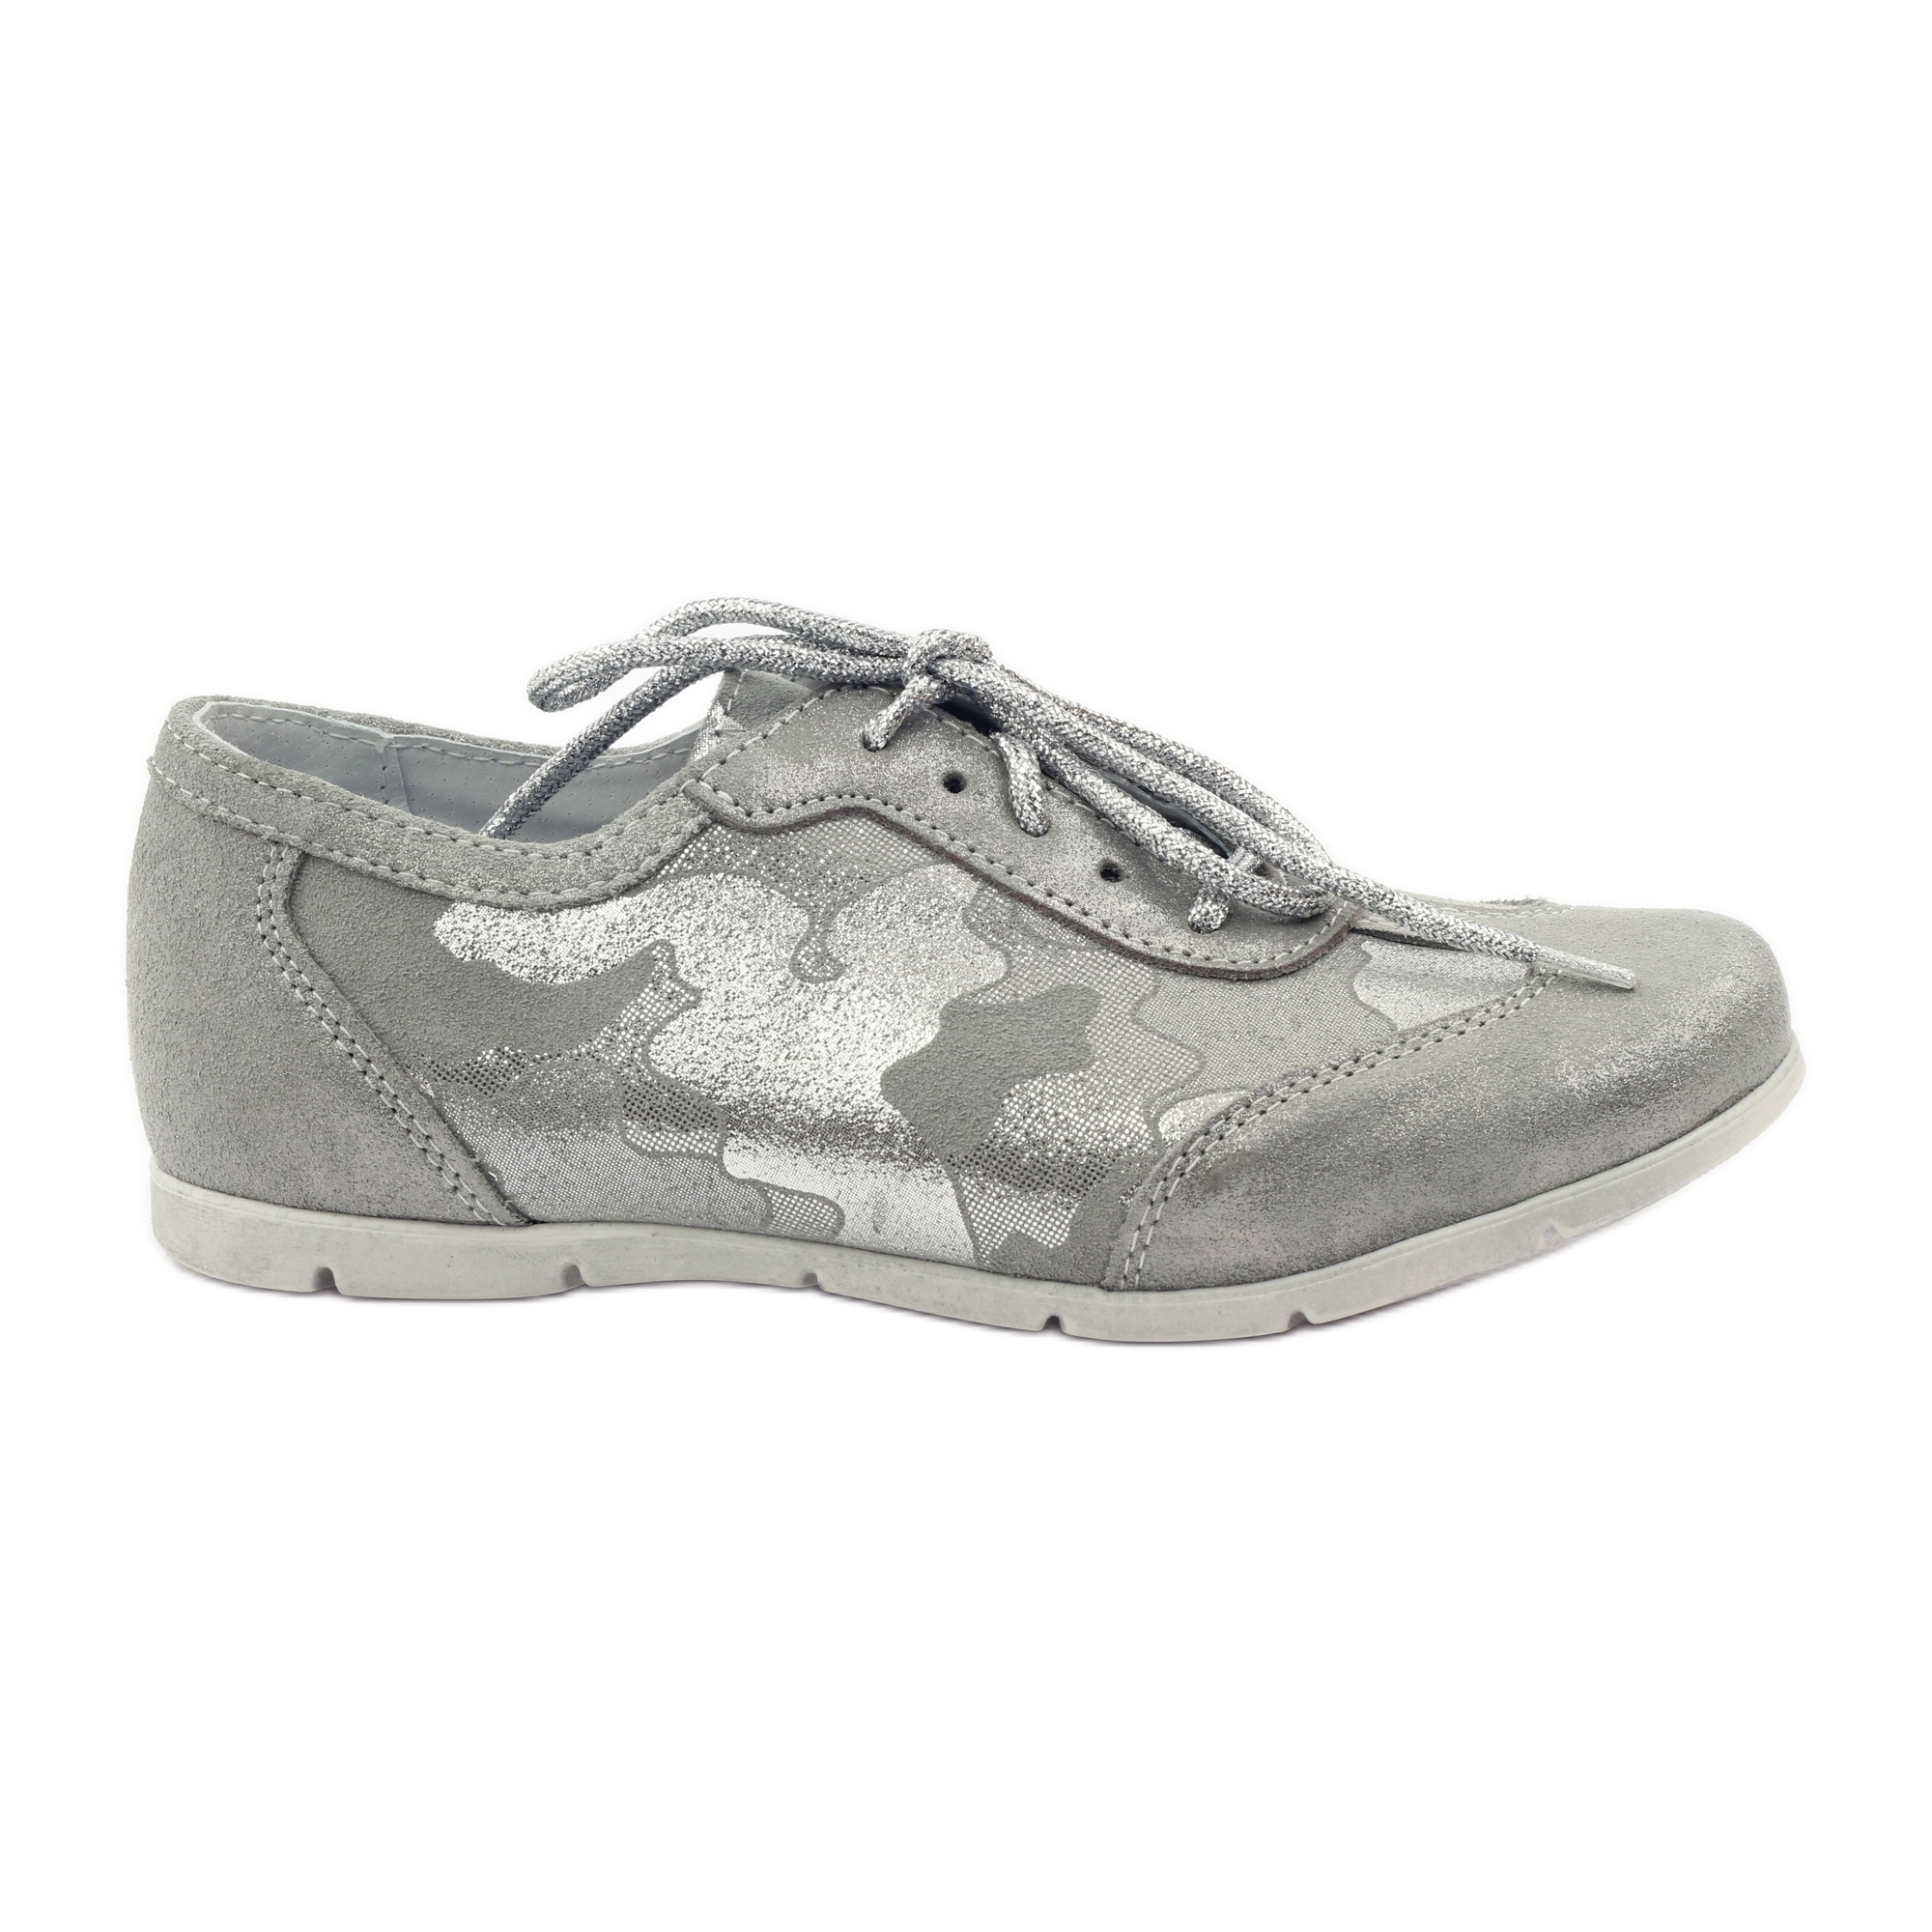 Athletic shoes bonded Ren But silver